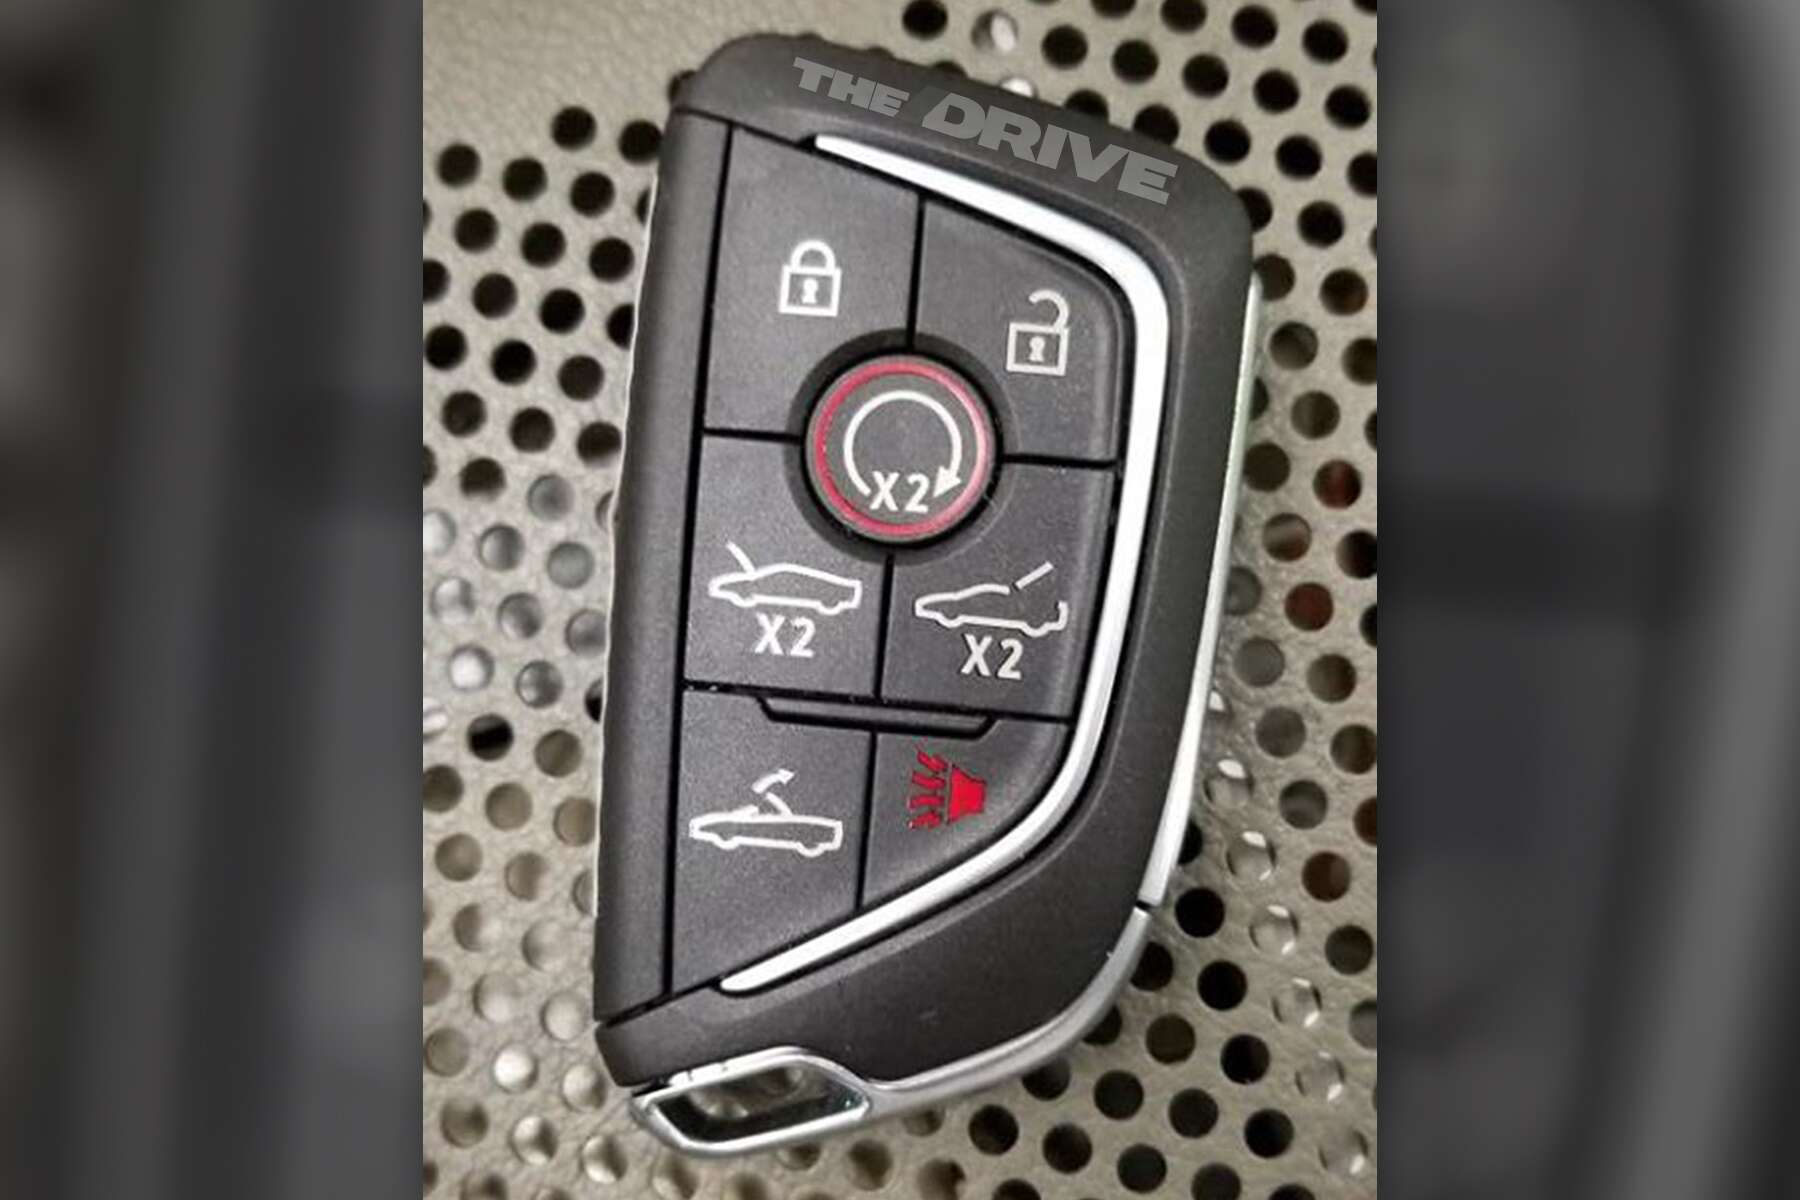 Mid Engined Cadillac Convertible Leaked Key Fob Suggests Corvette